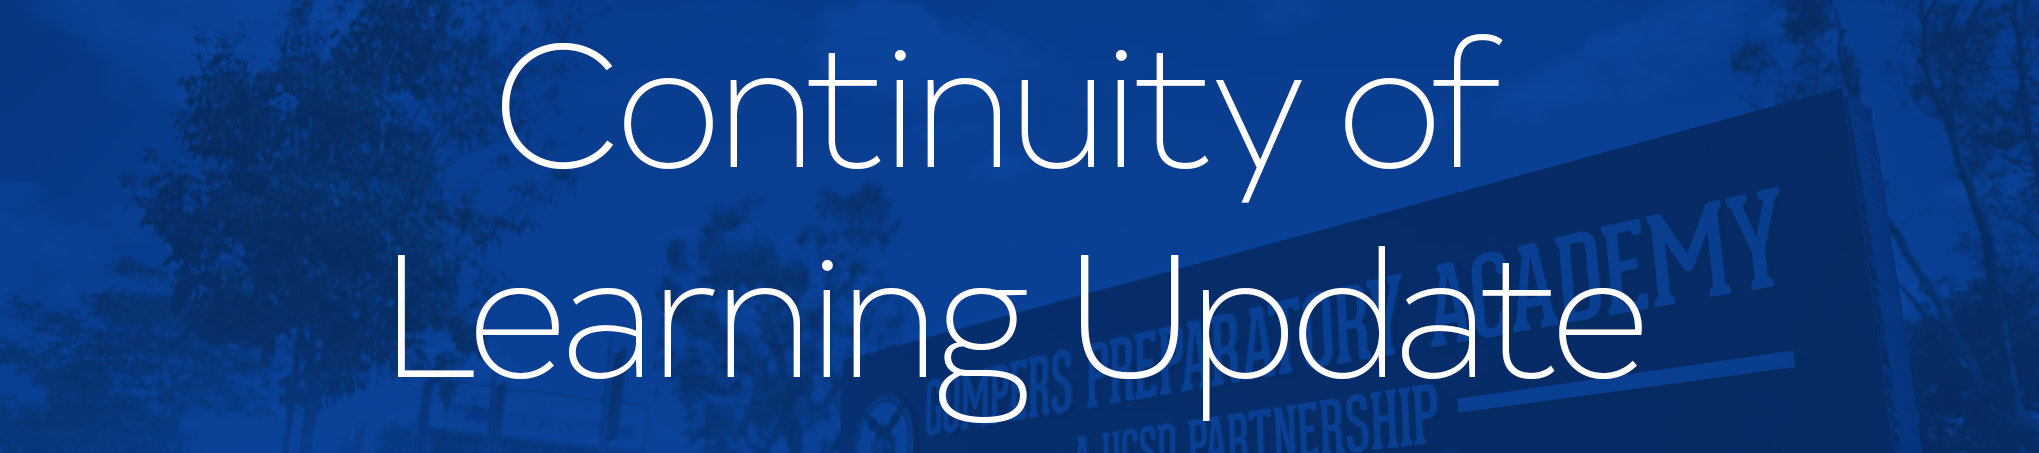 Continuity of Learning Plan Video - April 7, 2020